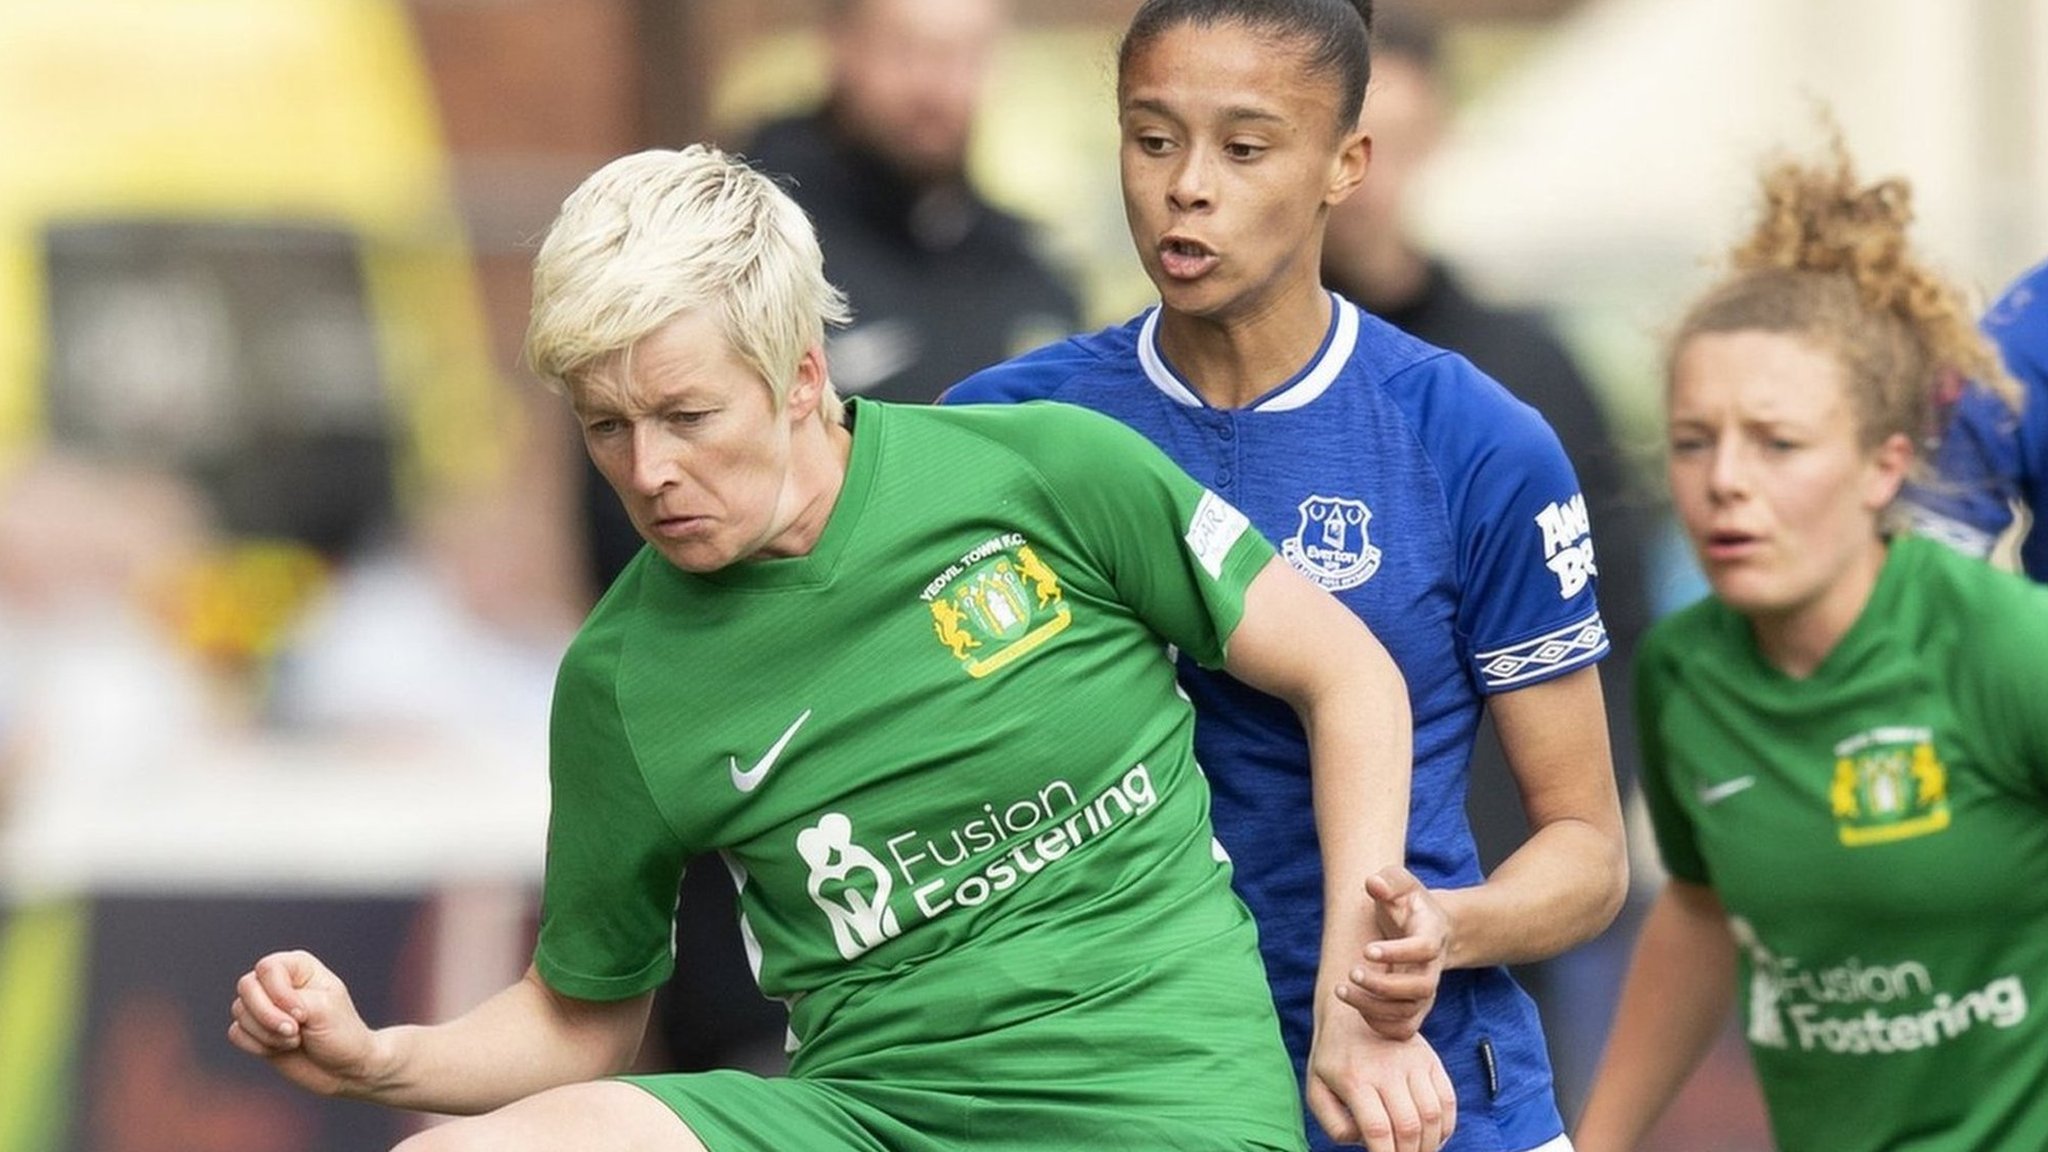 Yeovil Town Ladies hope for 'new chapter', after avoiding administration